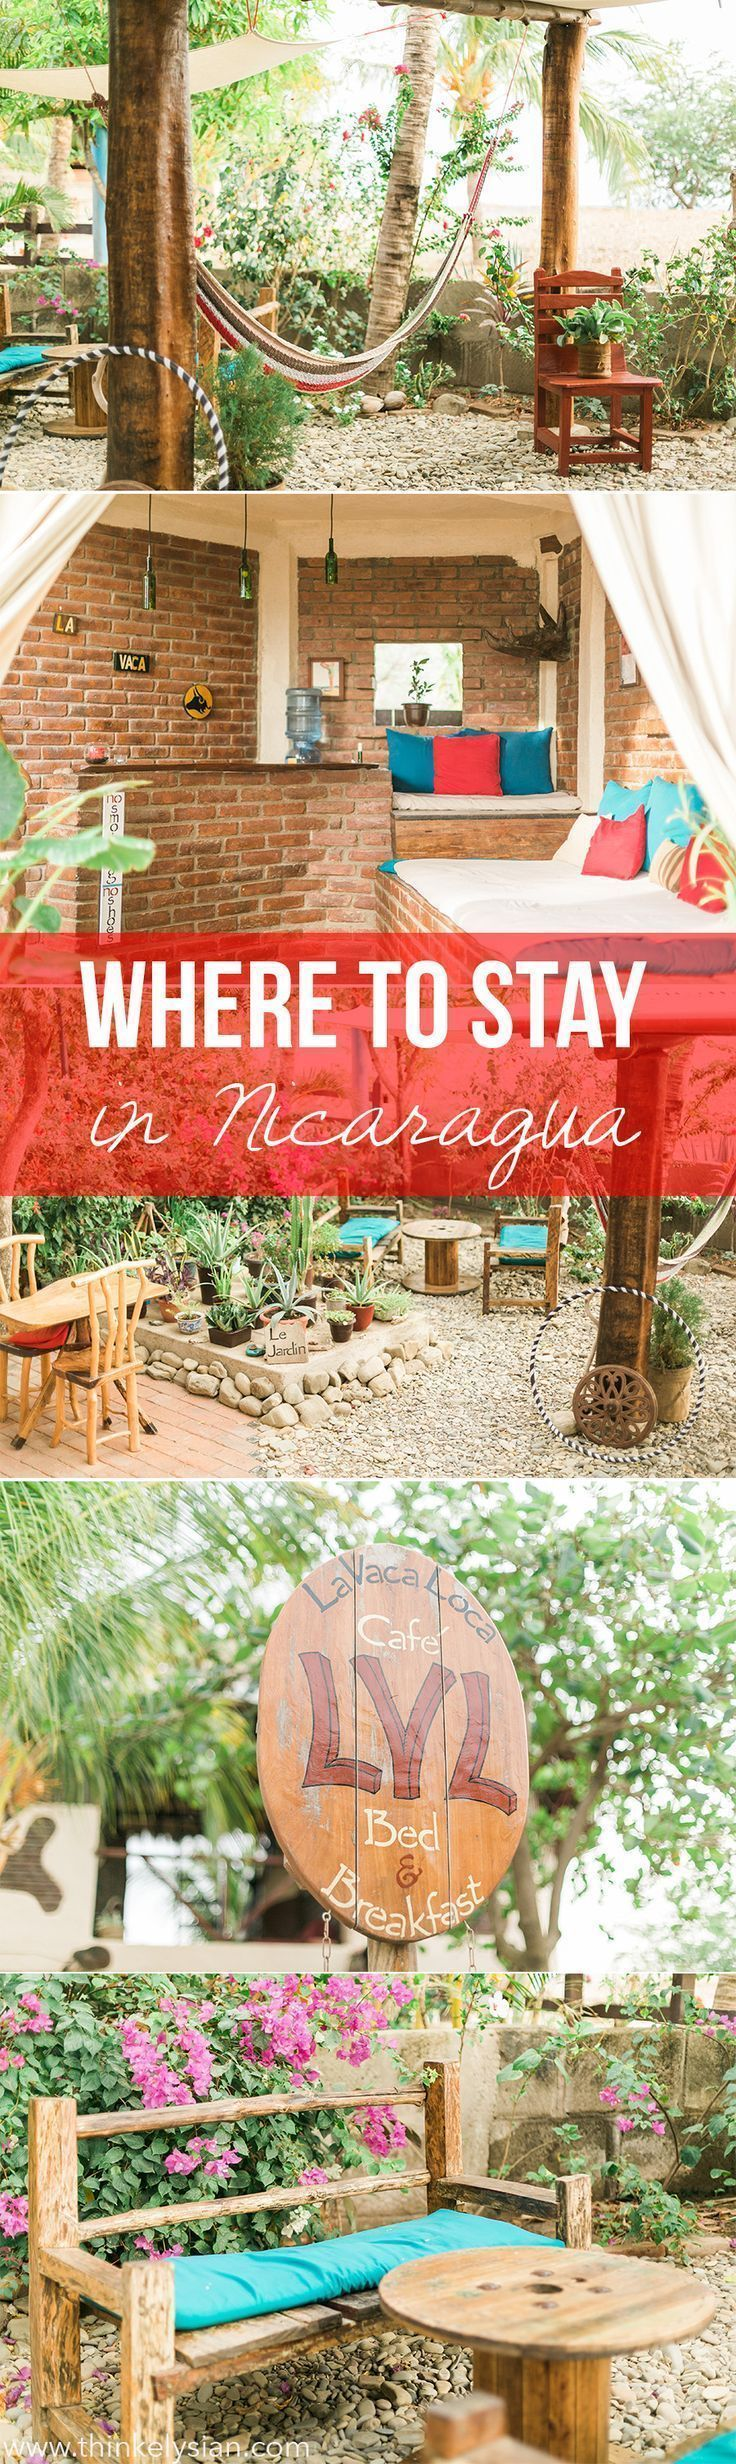 Where to stay in Nicaragua - Our favorite B&B near Popoyo Beach #Travel #Voyage #Nicaragua #BedandBreakfast #PopoyoBeach #Beach #Surf #Stay #Guide #Information